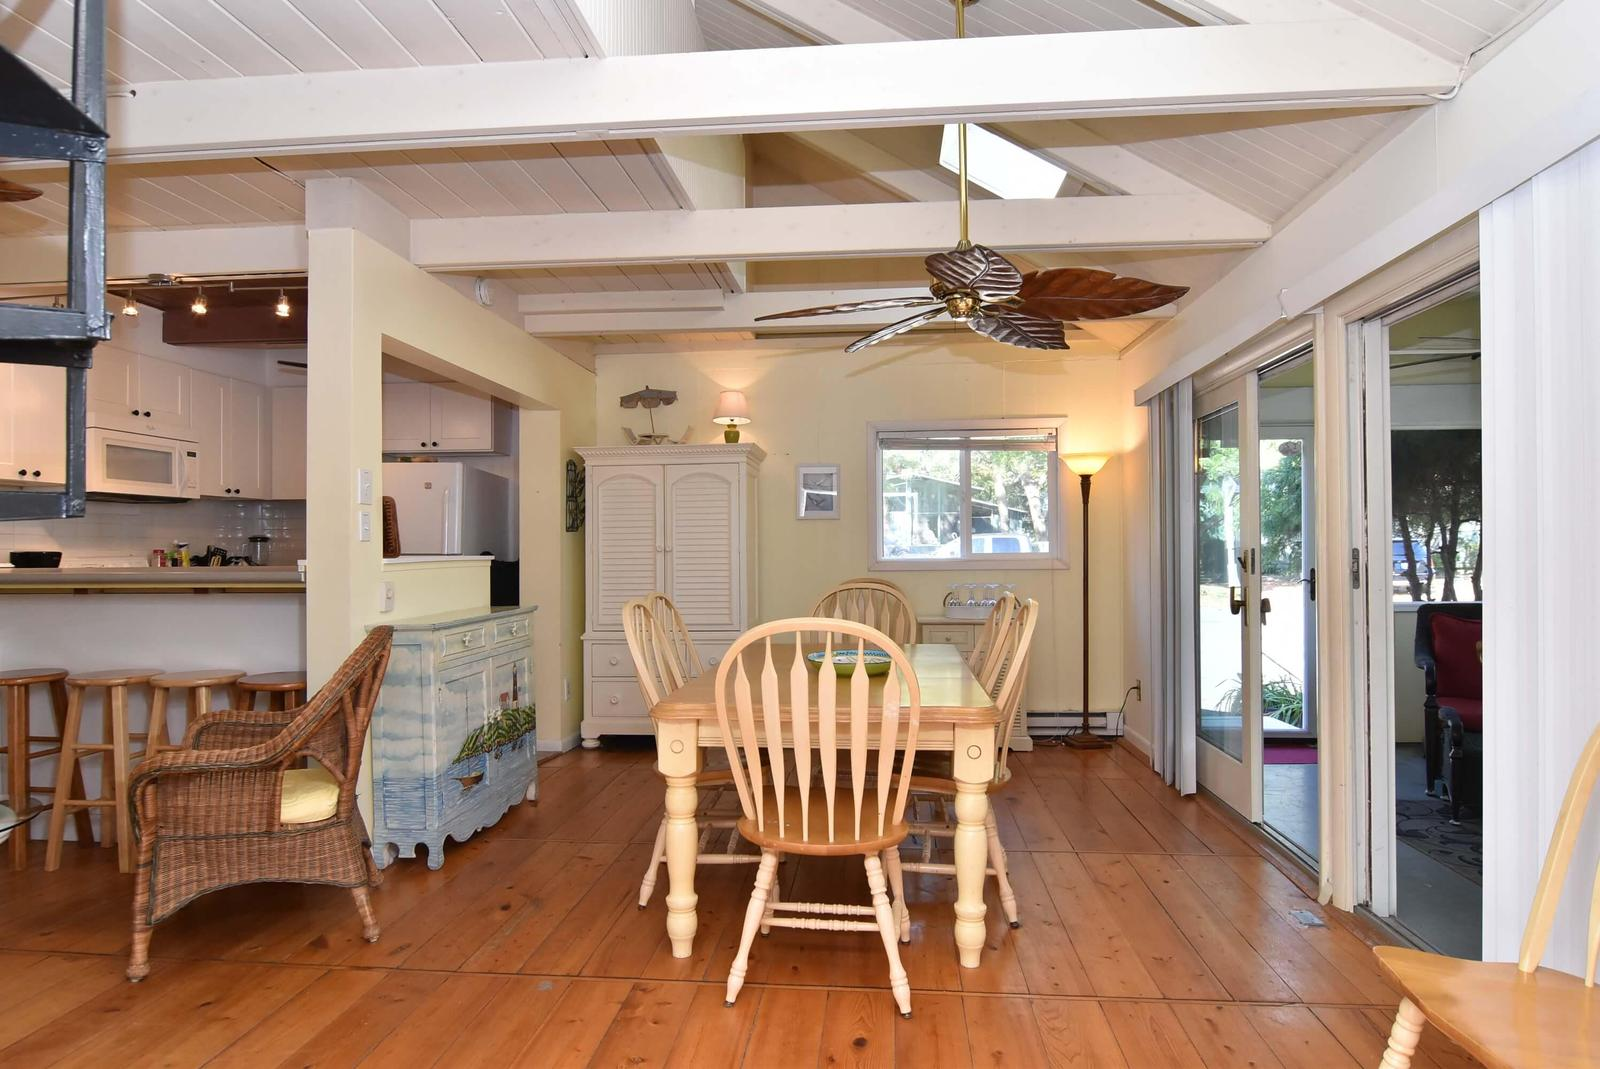 Dining room off kitchen, porch and sitting room with open ceiling and space for entertaining